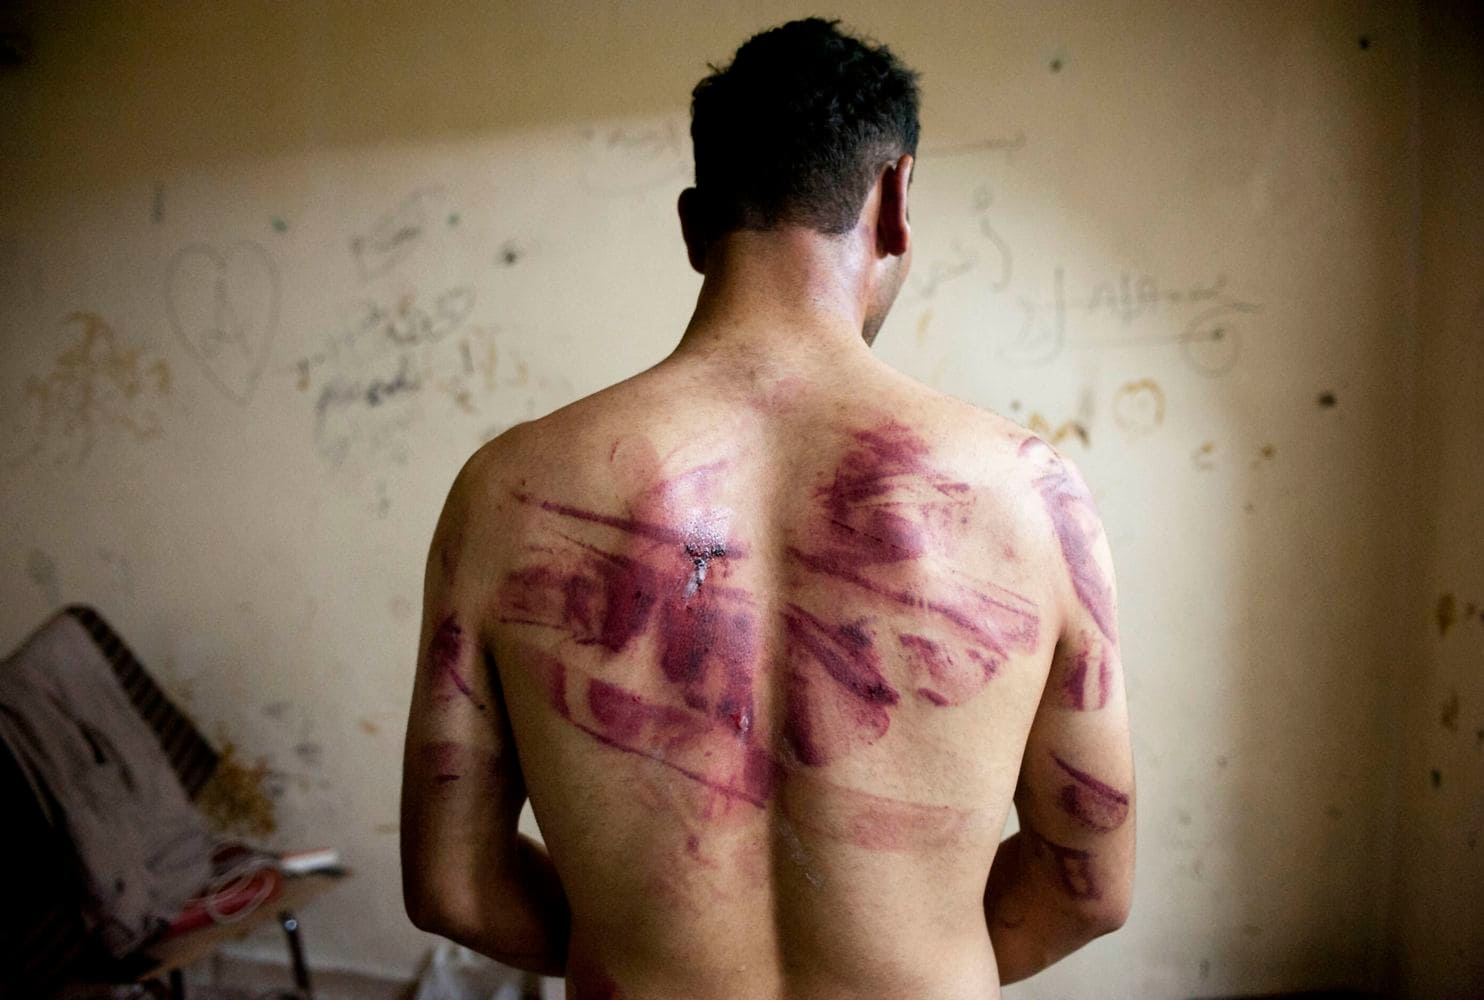 Syrian forces use widespread sexual violence to humiliate and silence male prisoners, new report says